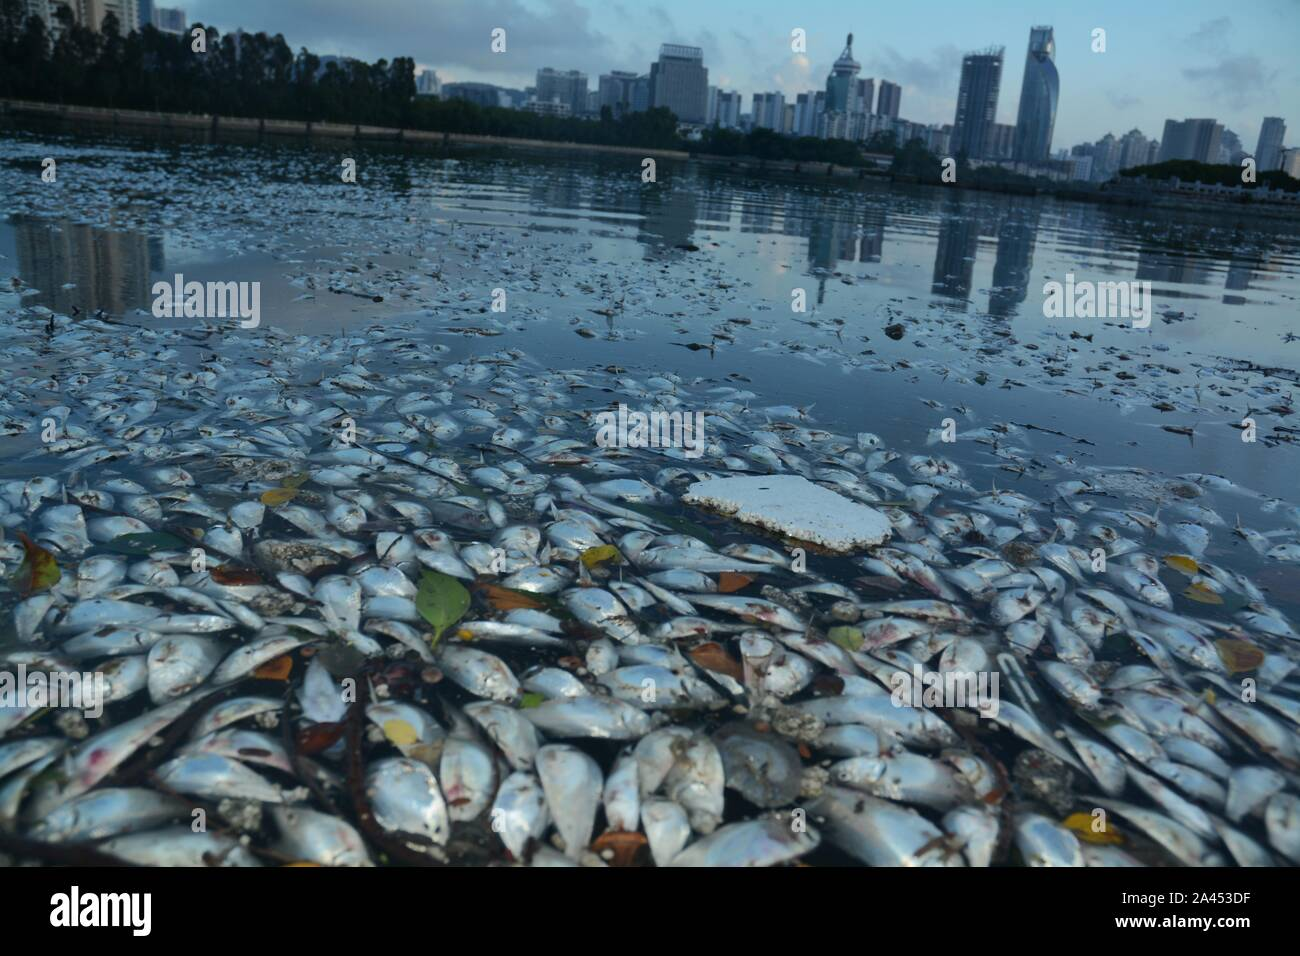 Dead fish is floating on a river after the Typhoon Bailu, the 11th typhoon this year, in Xiamen city, southeast China's Fujian province, 26 August 201 Stock Photo